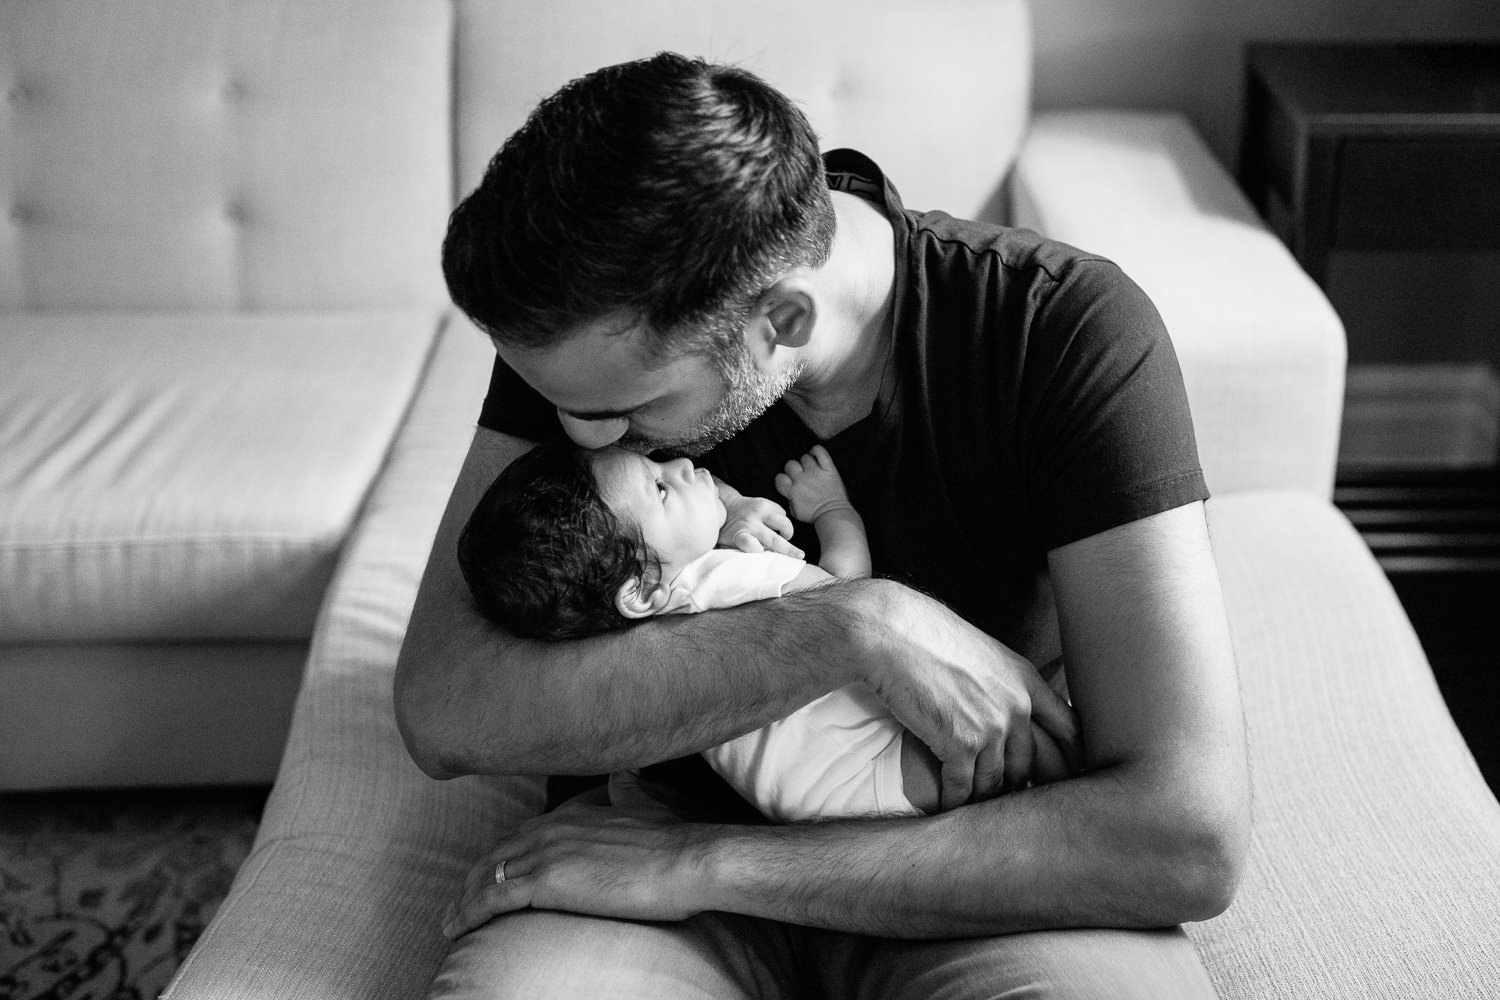 new father sitting on edge of couch holding 1 month old baby boy in onesie in his arms and kissing son on forhead - York Region Lifestyle Photography